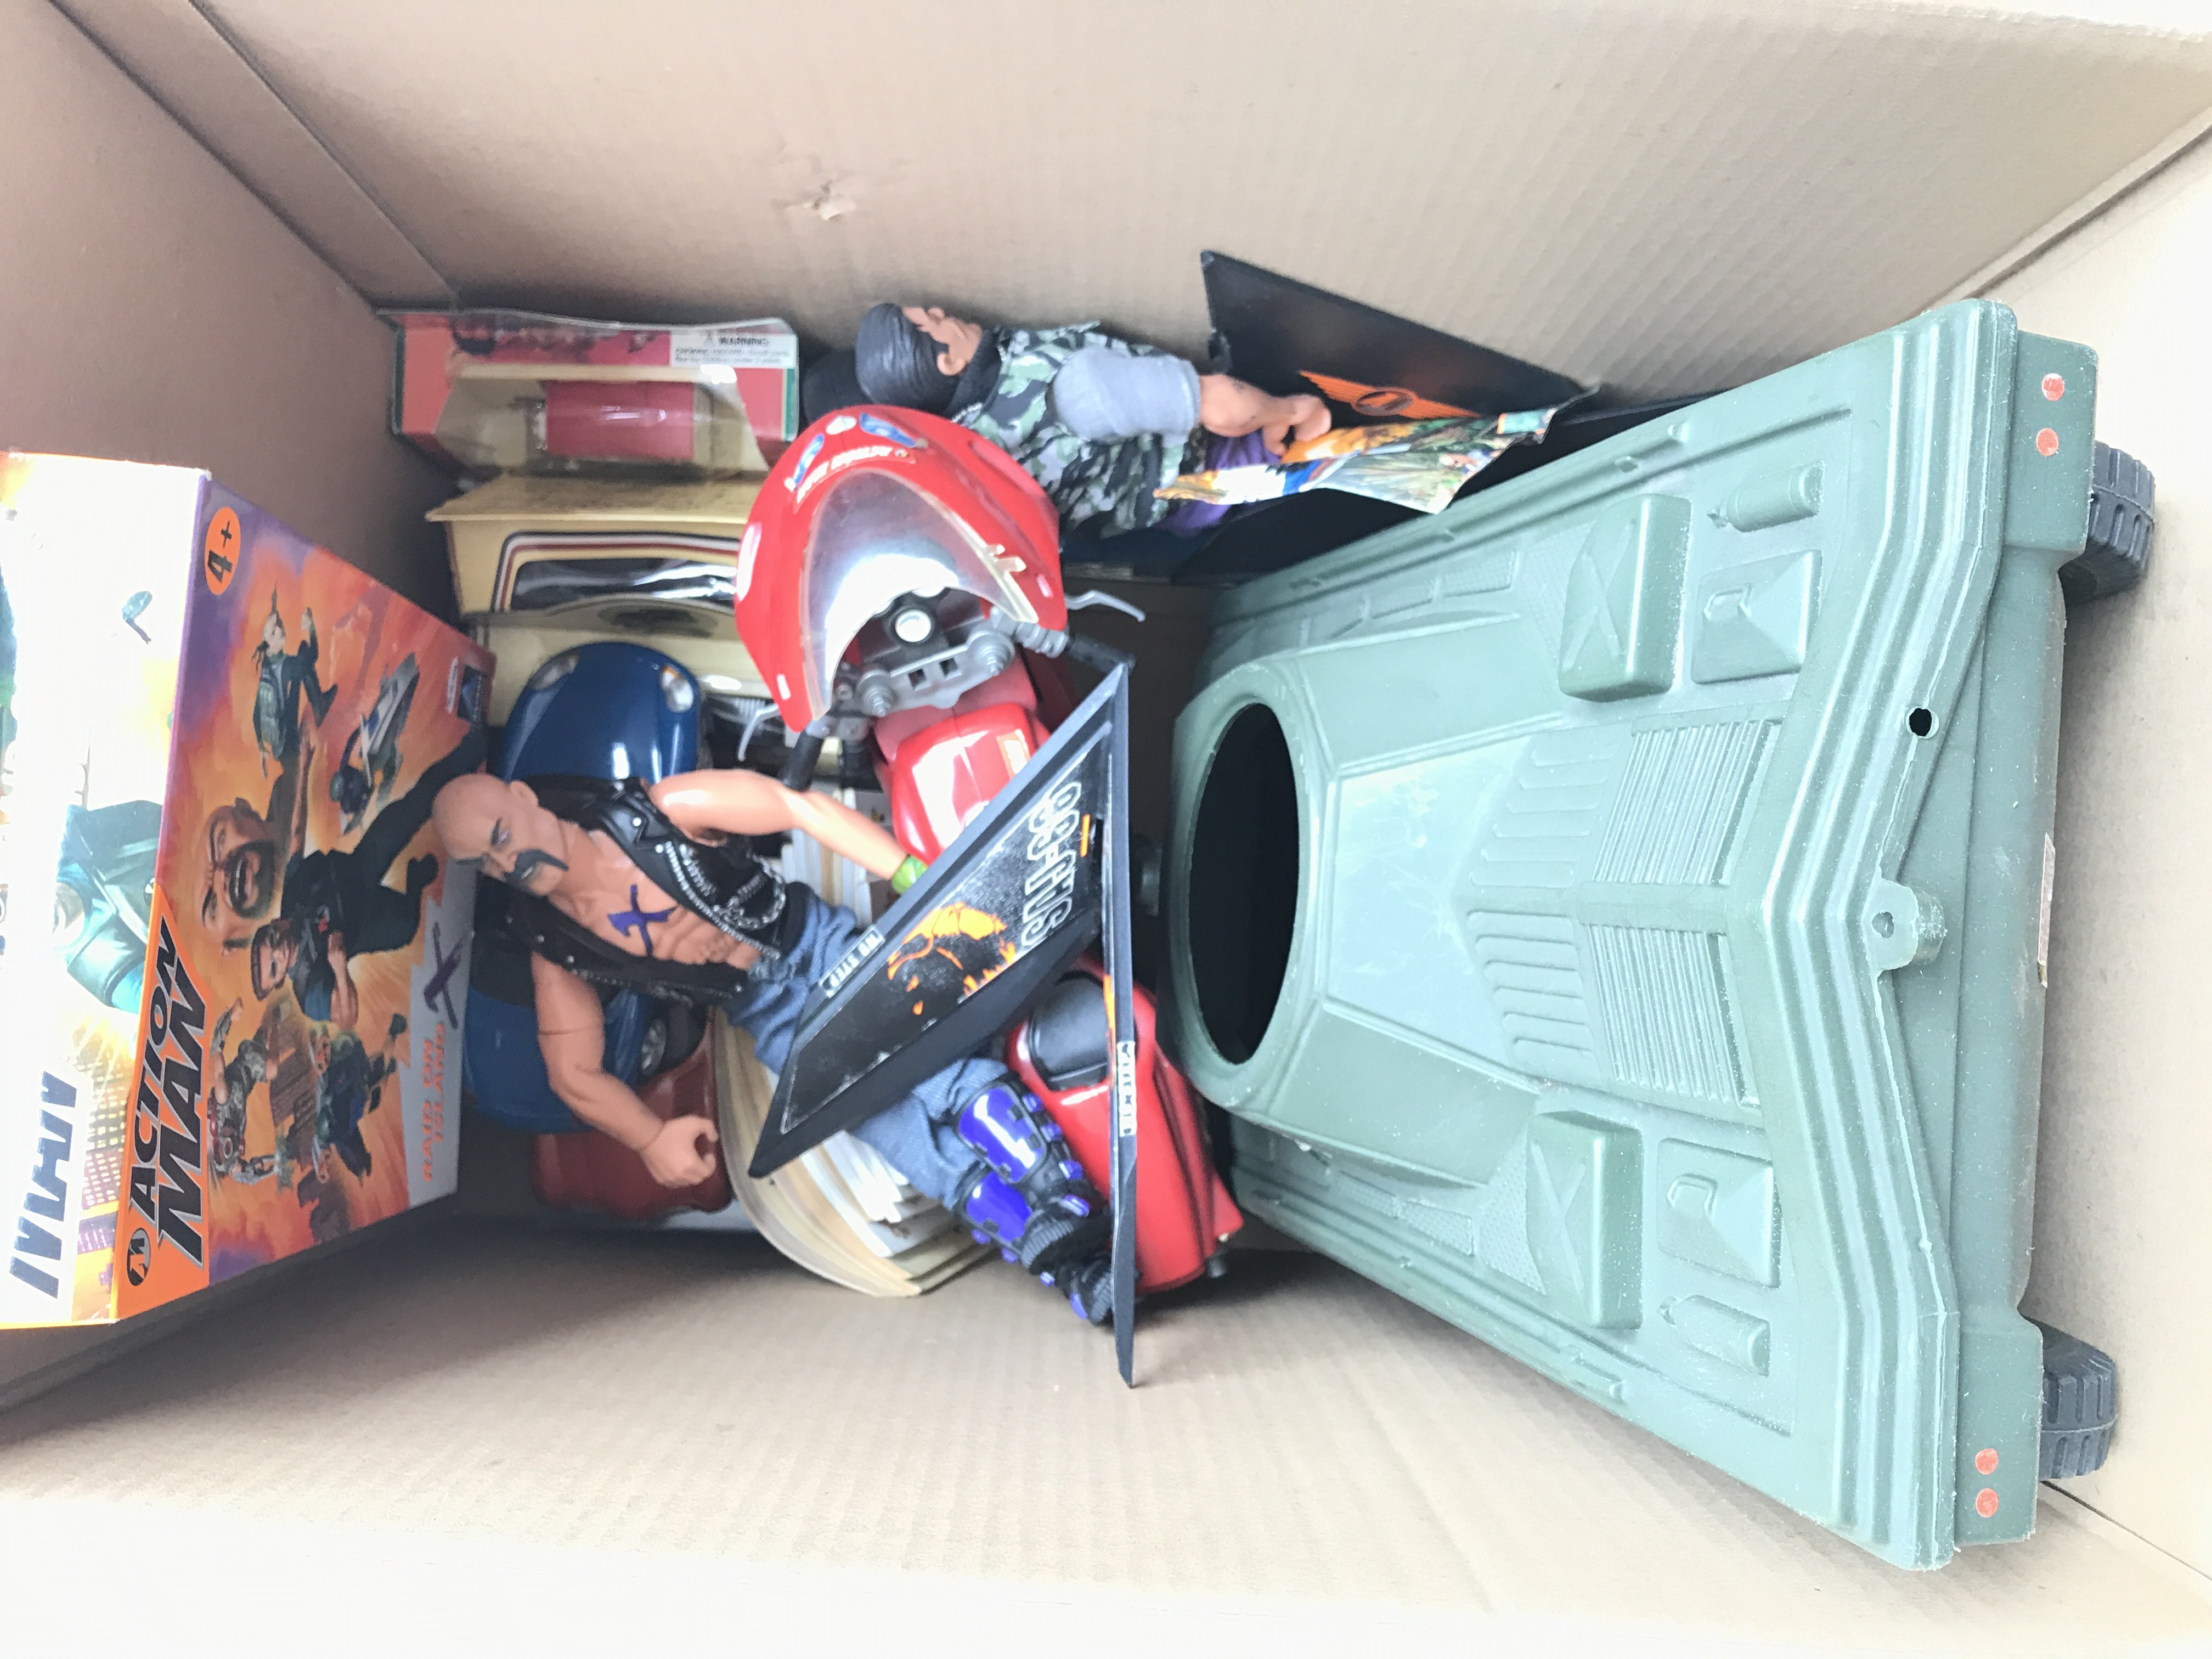 2 X Boxes containing a Collection of Modern Action - Image 5 of 6